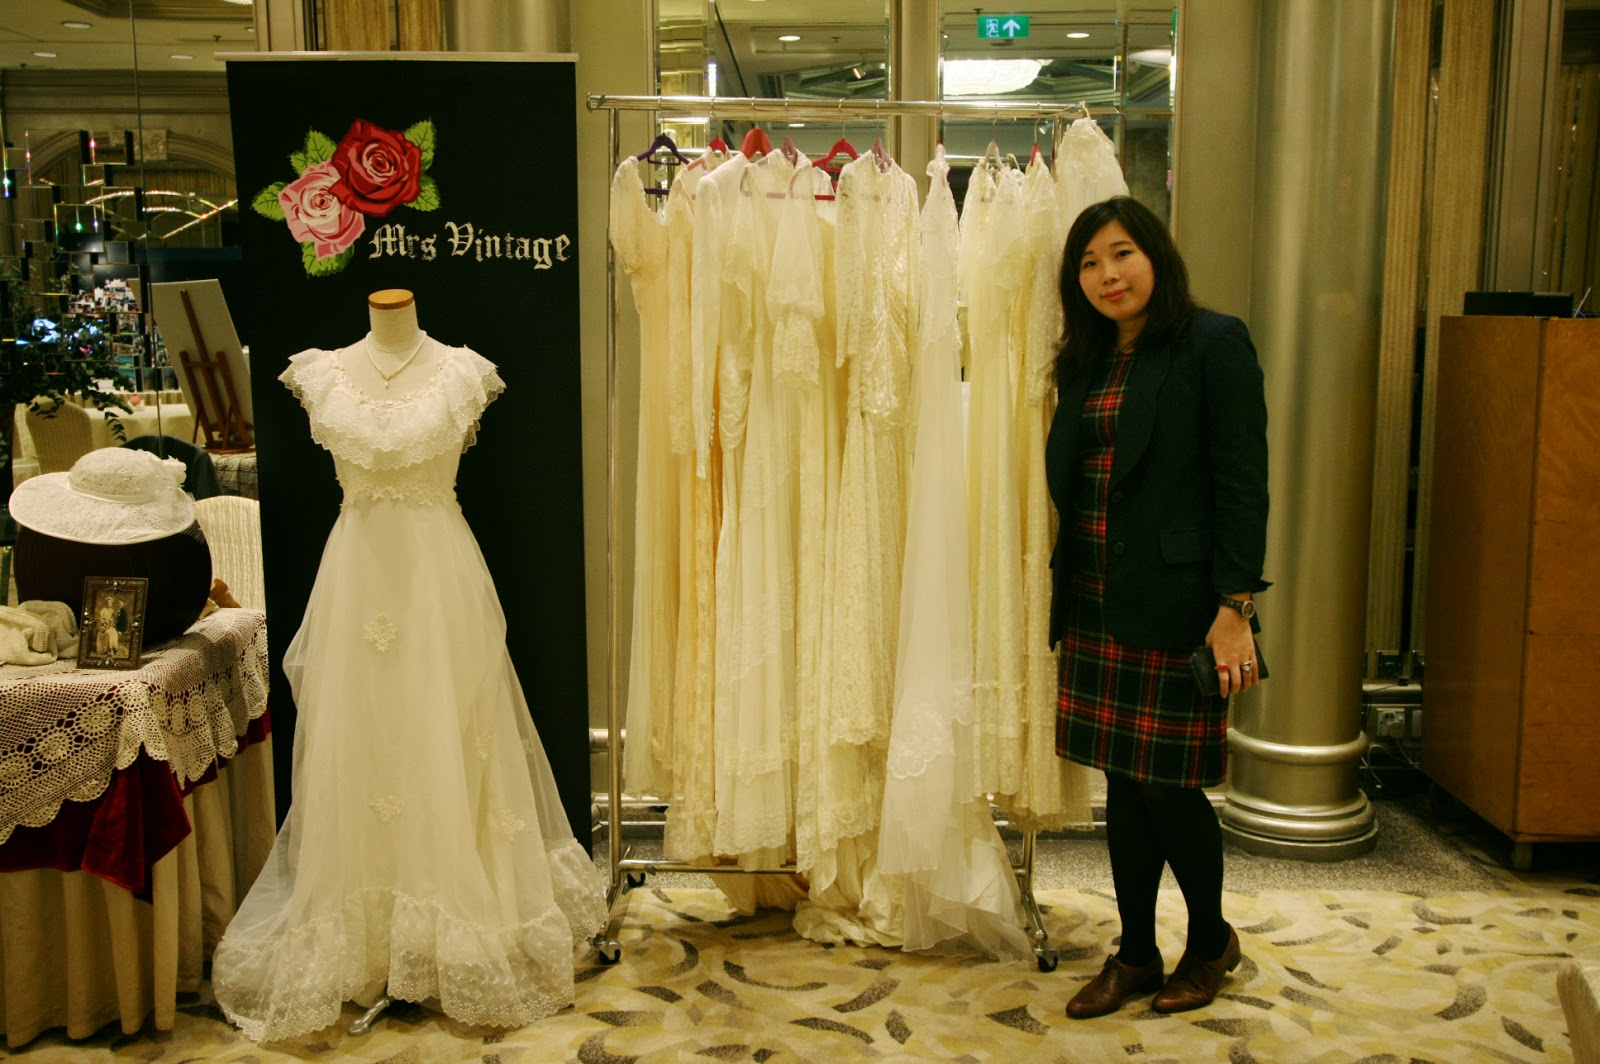 On 11 12 Jan 2014 I Have Joined Again The In House Wedding Fair At Regal Hongkong Hotel Showcasing Our New Vintage Gowns And Accessories